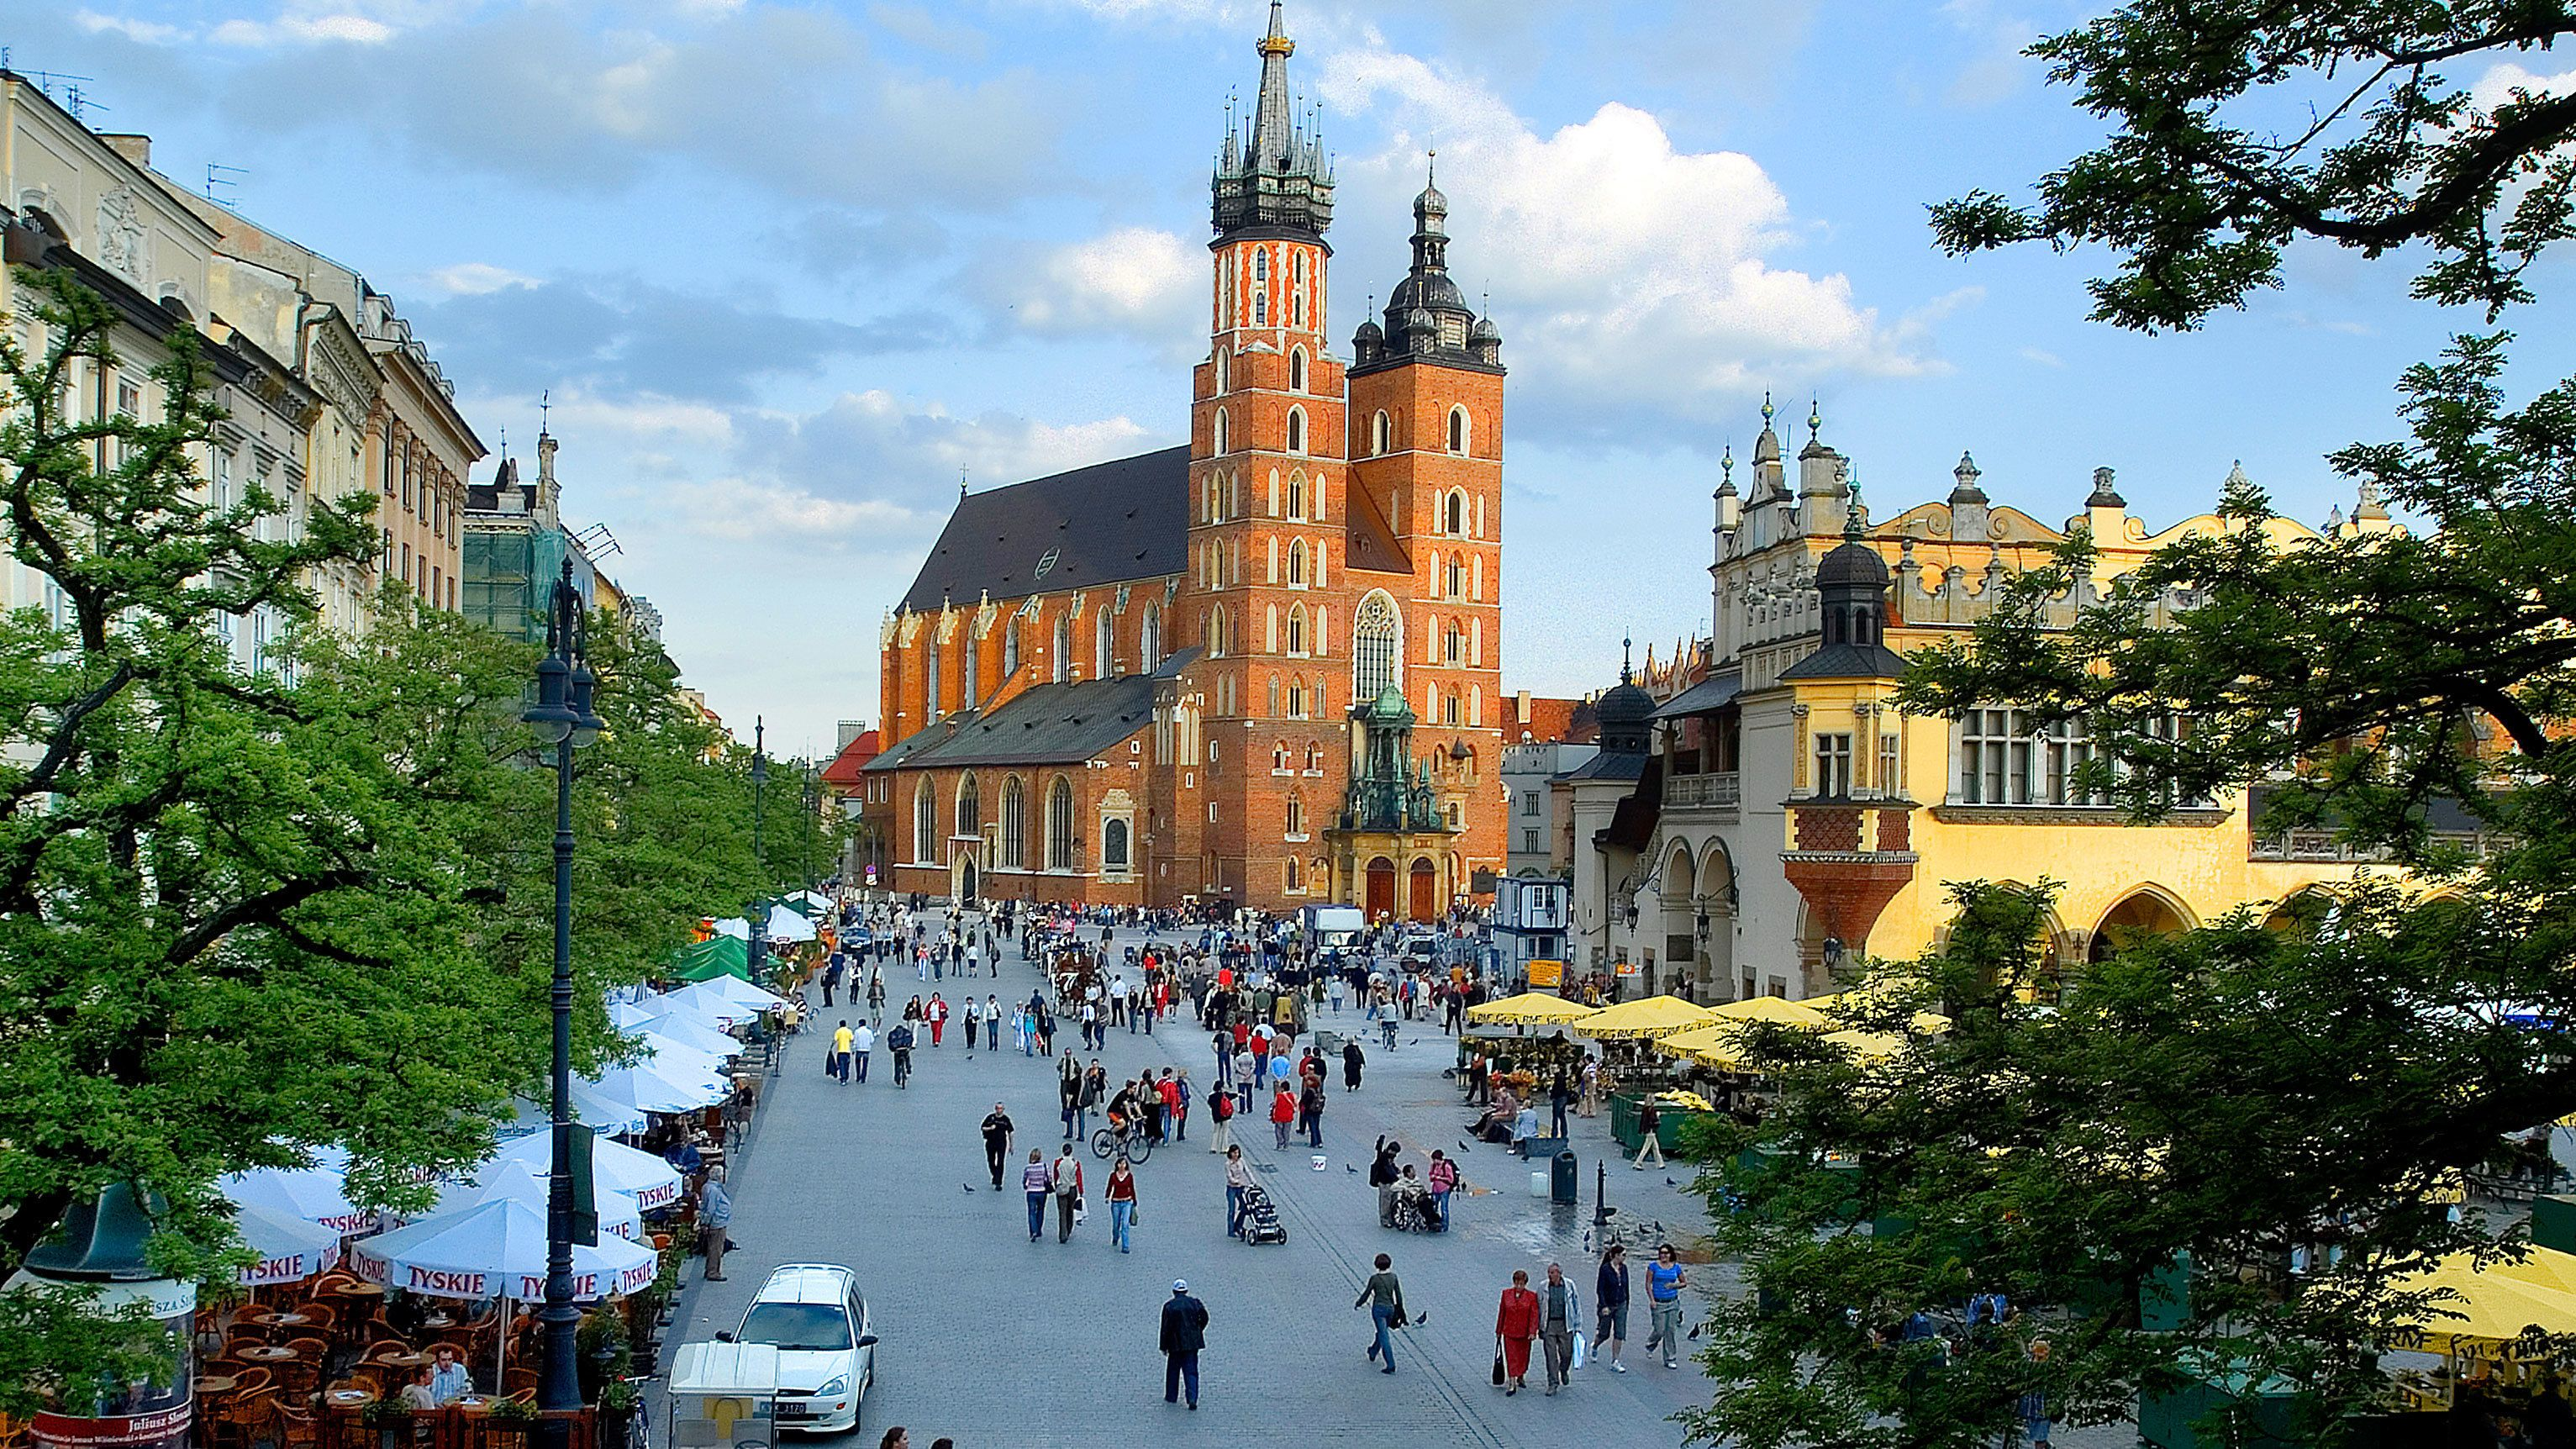 View of tourists walking around Kraków, Poland